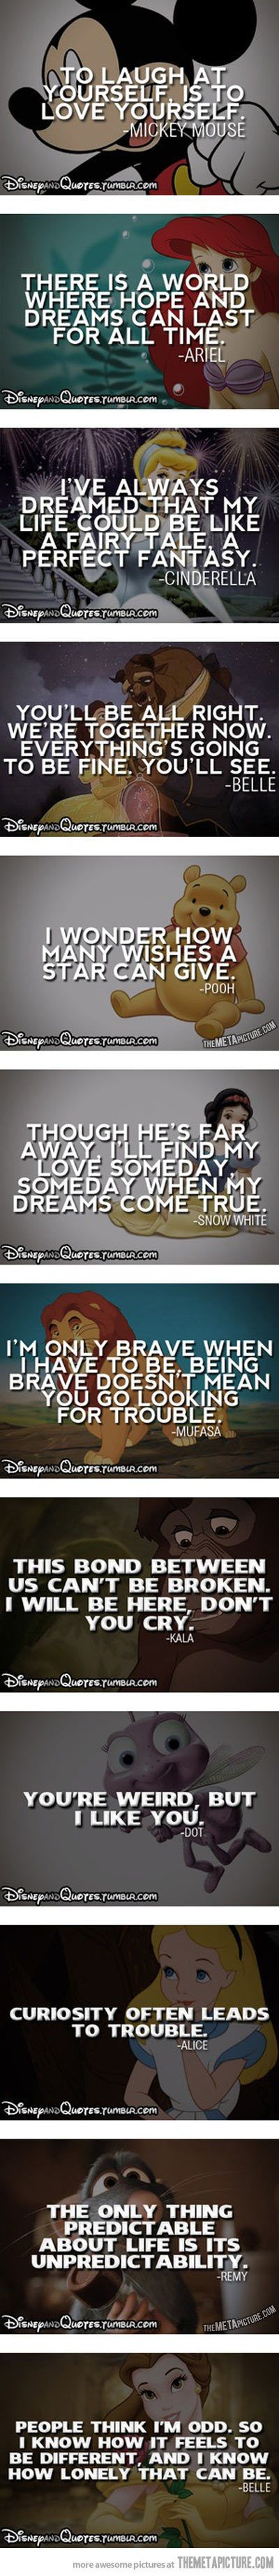 Disney Character Quotes II How characters are used to represent ideals and beliefs of the maker in movies~